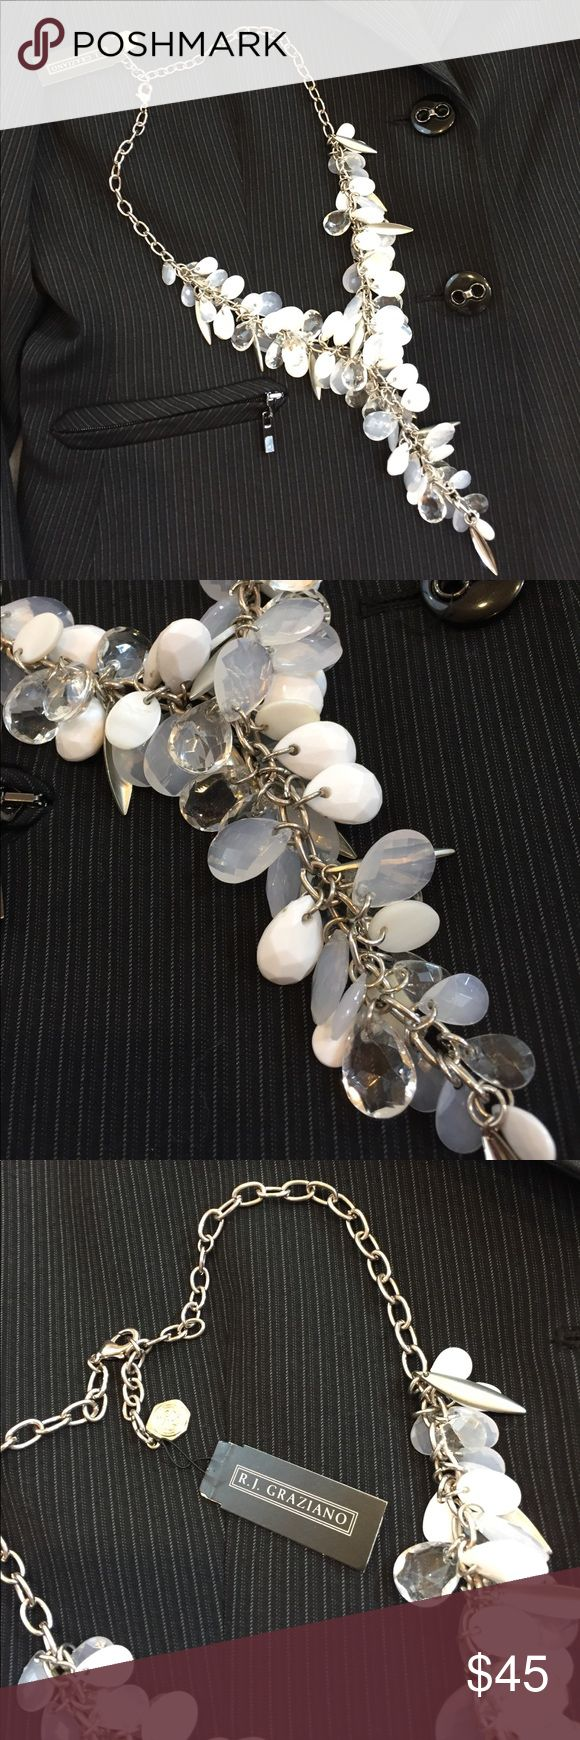 """NWT R.J. Graziano necklace This is a gorgeous NWT R.J. Graziano necklace. It is silver toned with white and clear beads. The length is adjustable and the longest length is approximately 21"""". R.J. Graziano Jewelry Necklaces"""